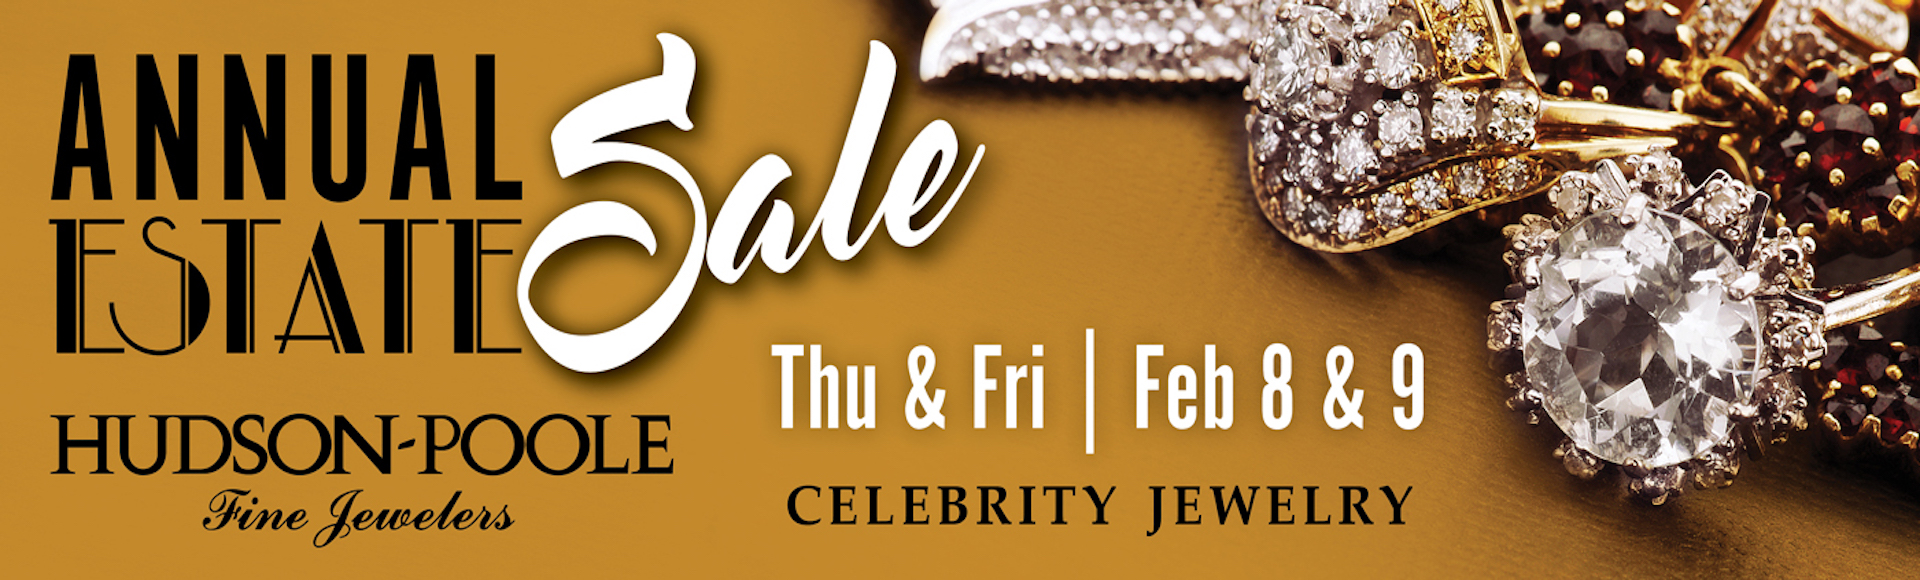 Celebrity Jewelry Estate Sale Feb 8 & 9